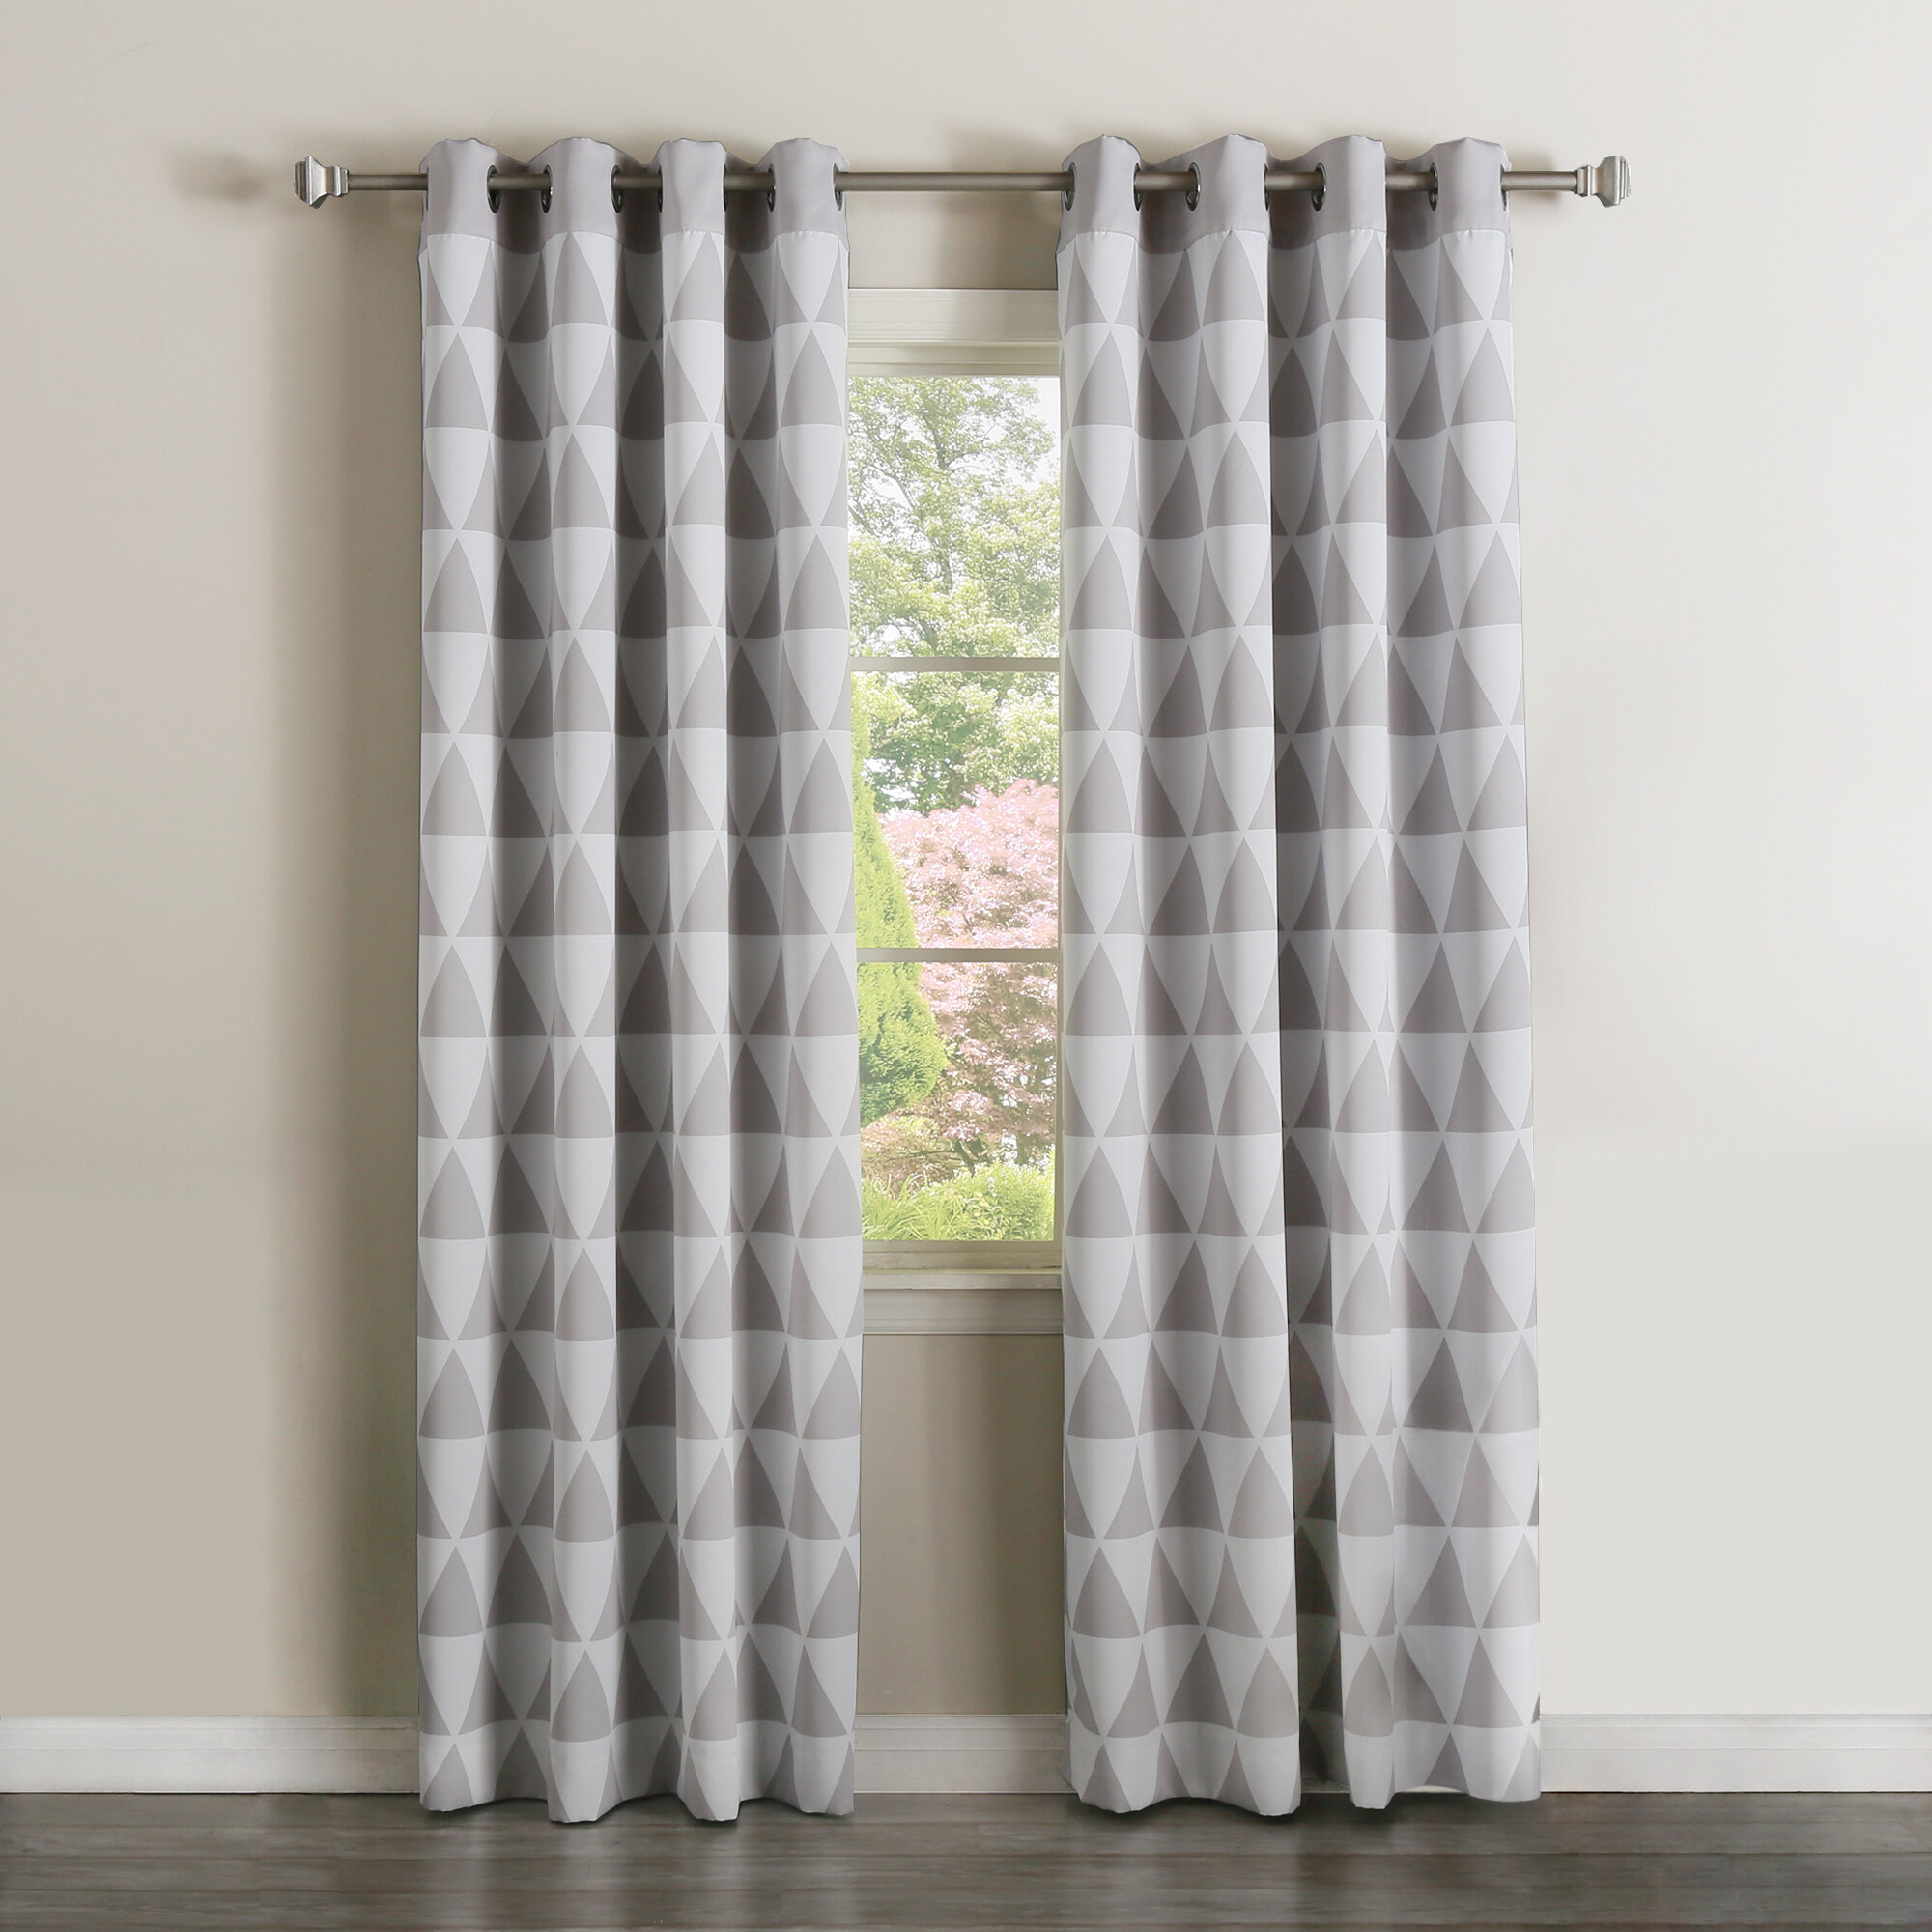 eyelet room living door for tone pinterest curtains pin patio